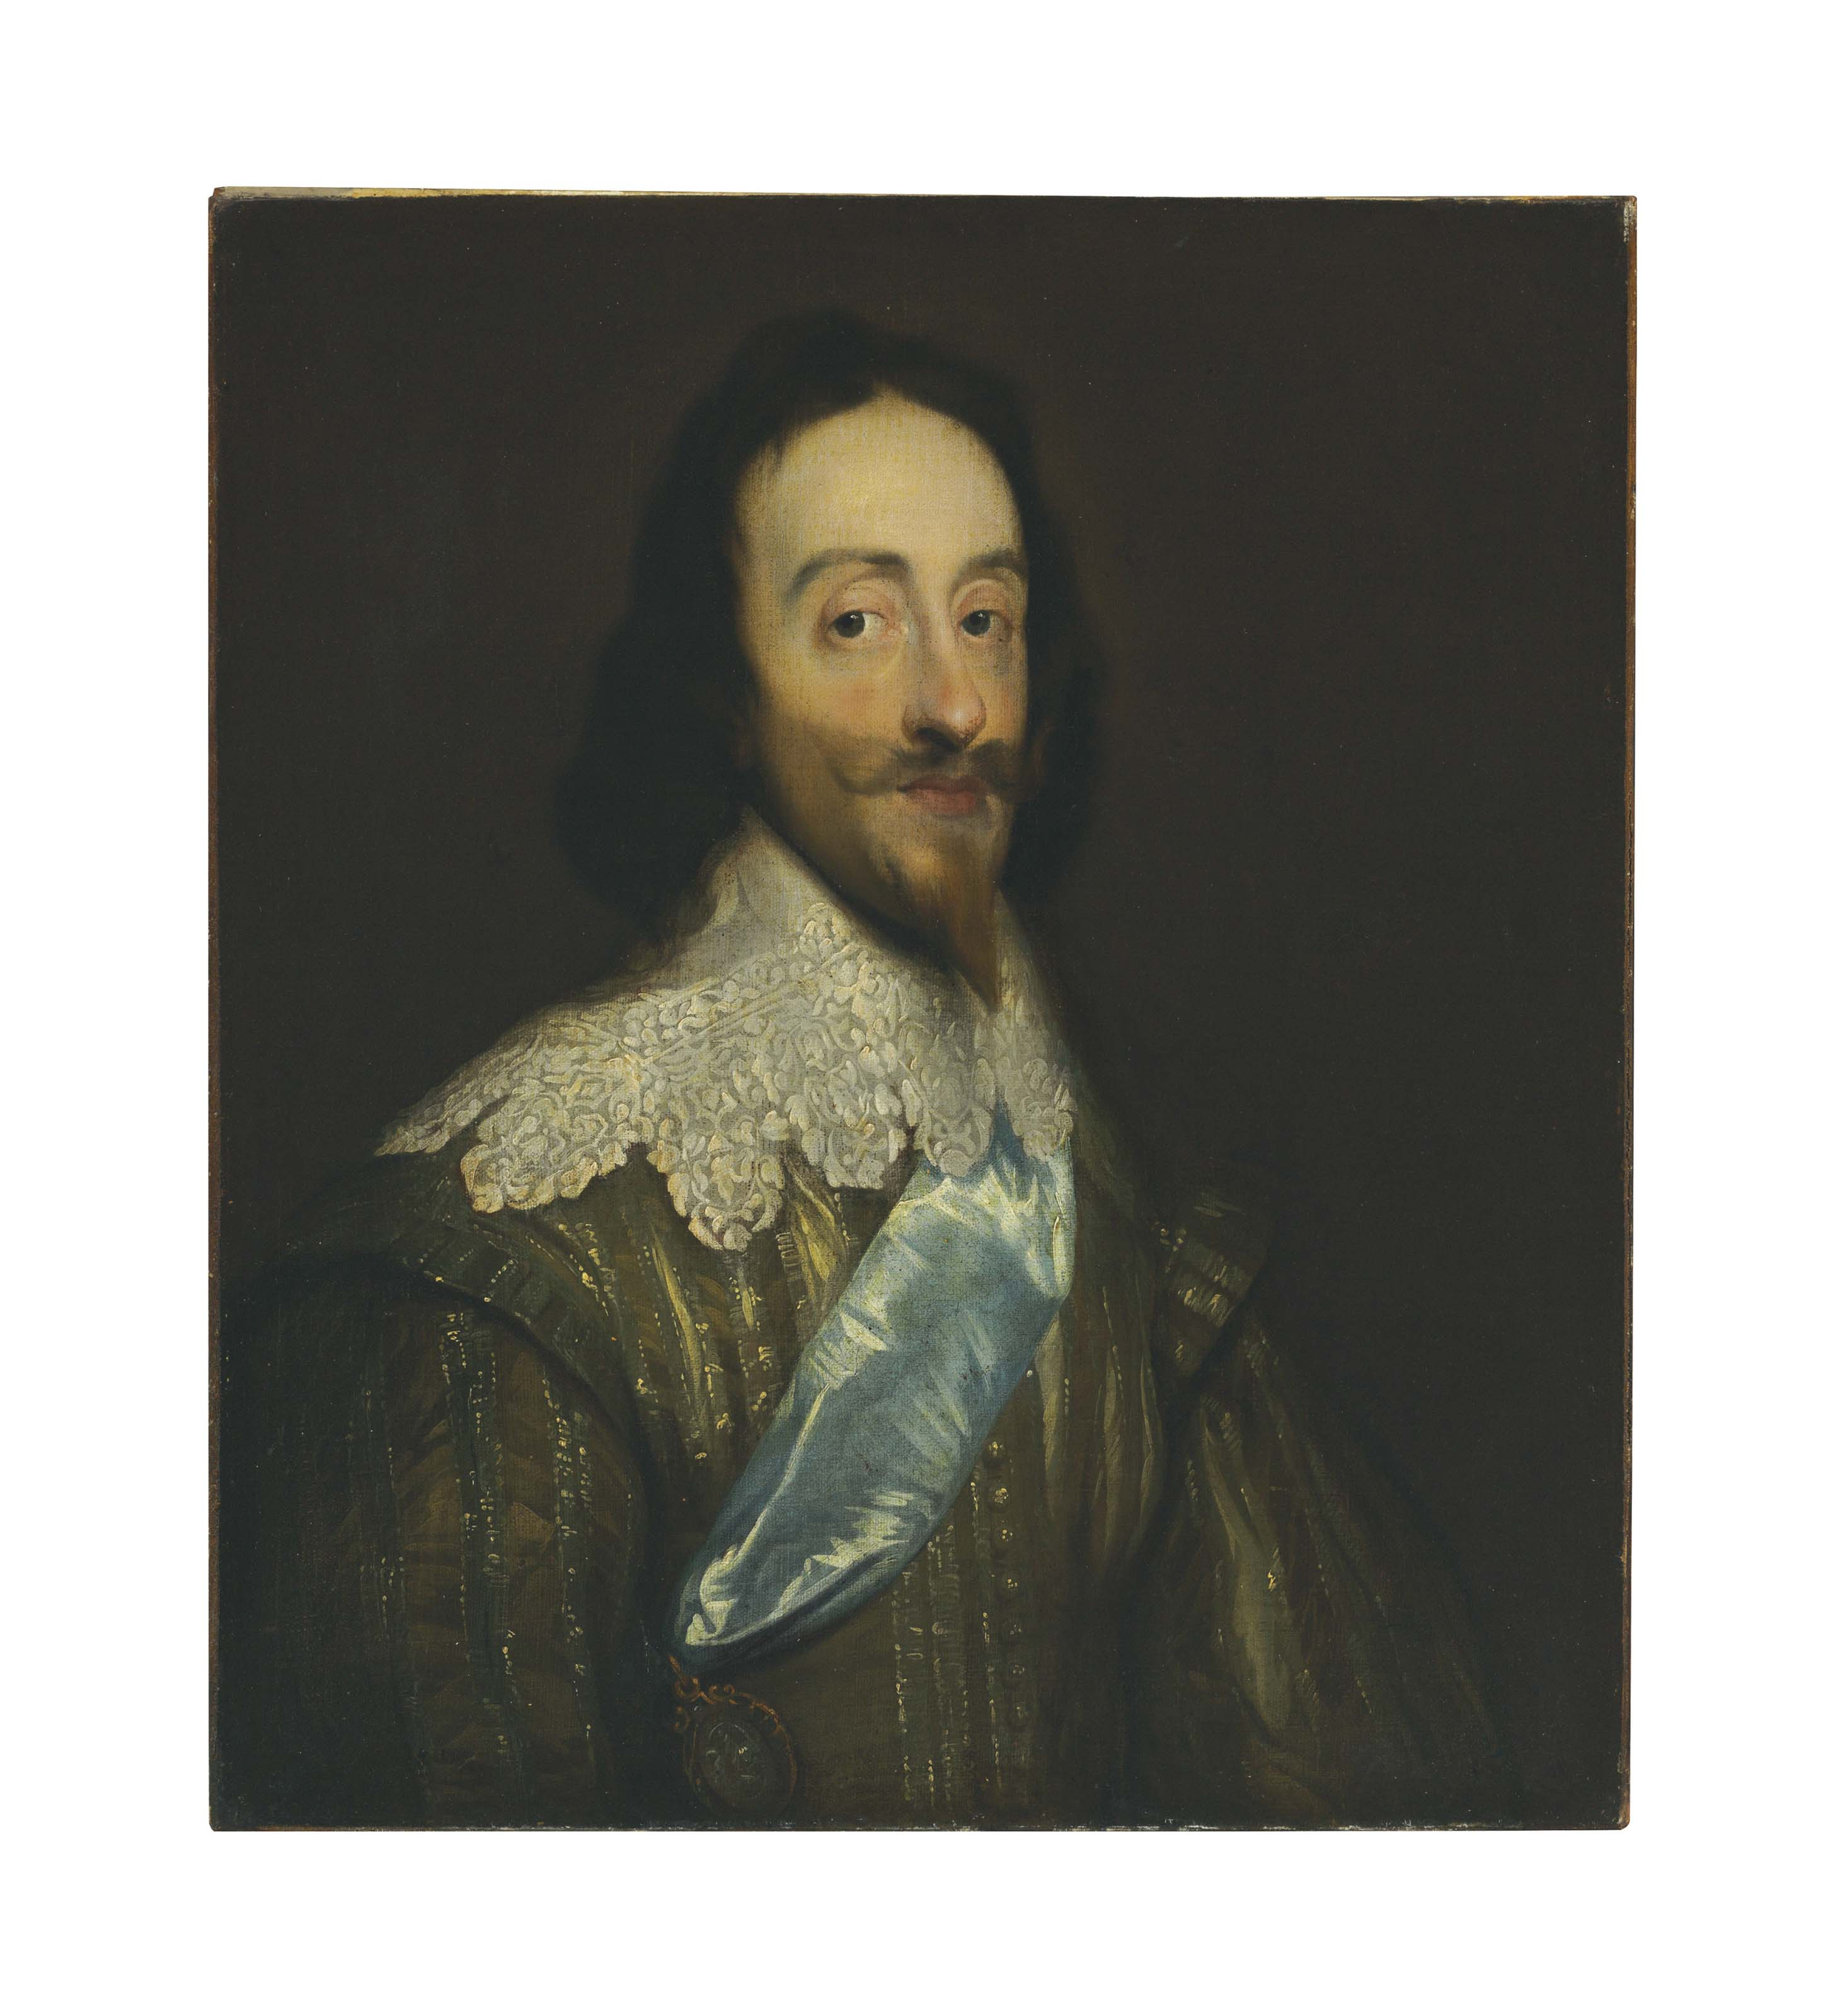 Portrait of King Charles I (1600-1649), bust-length